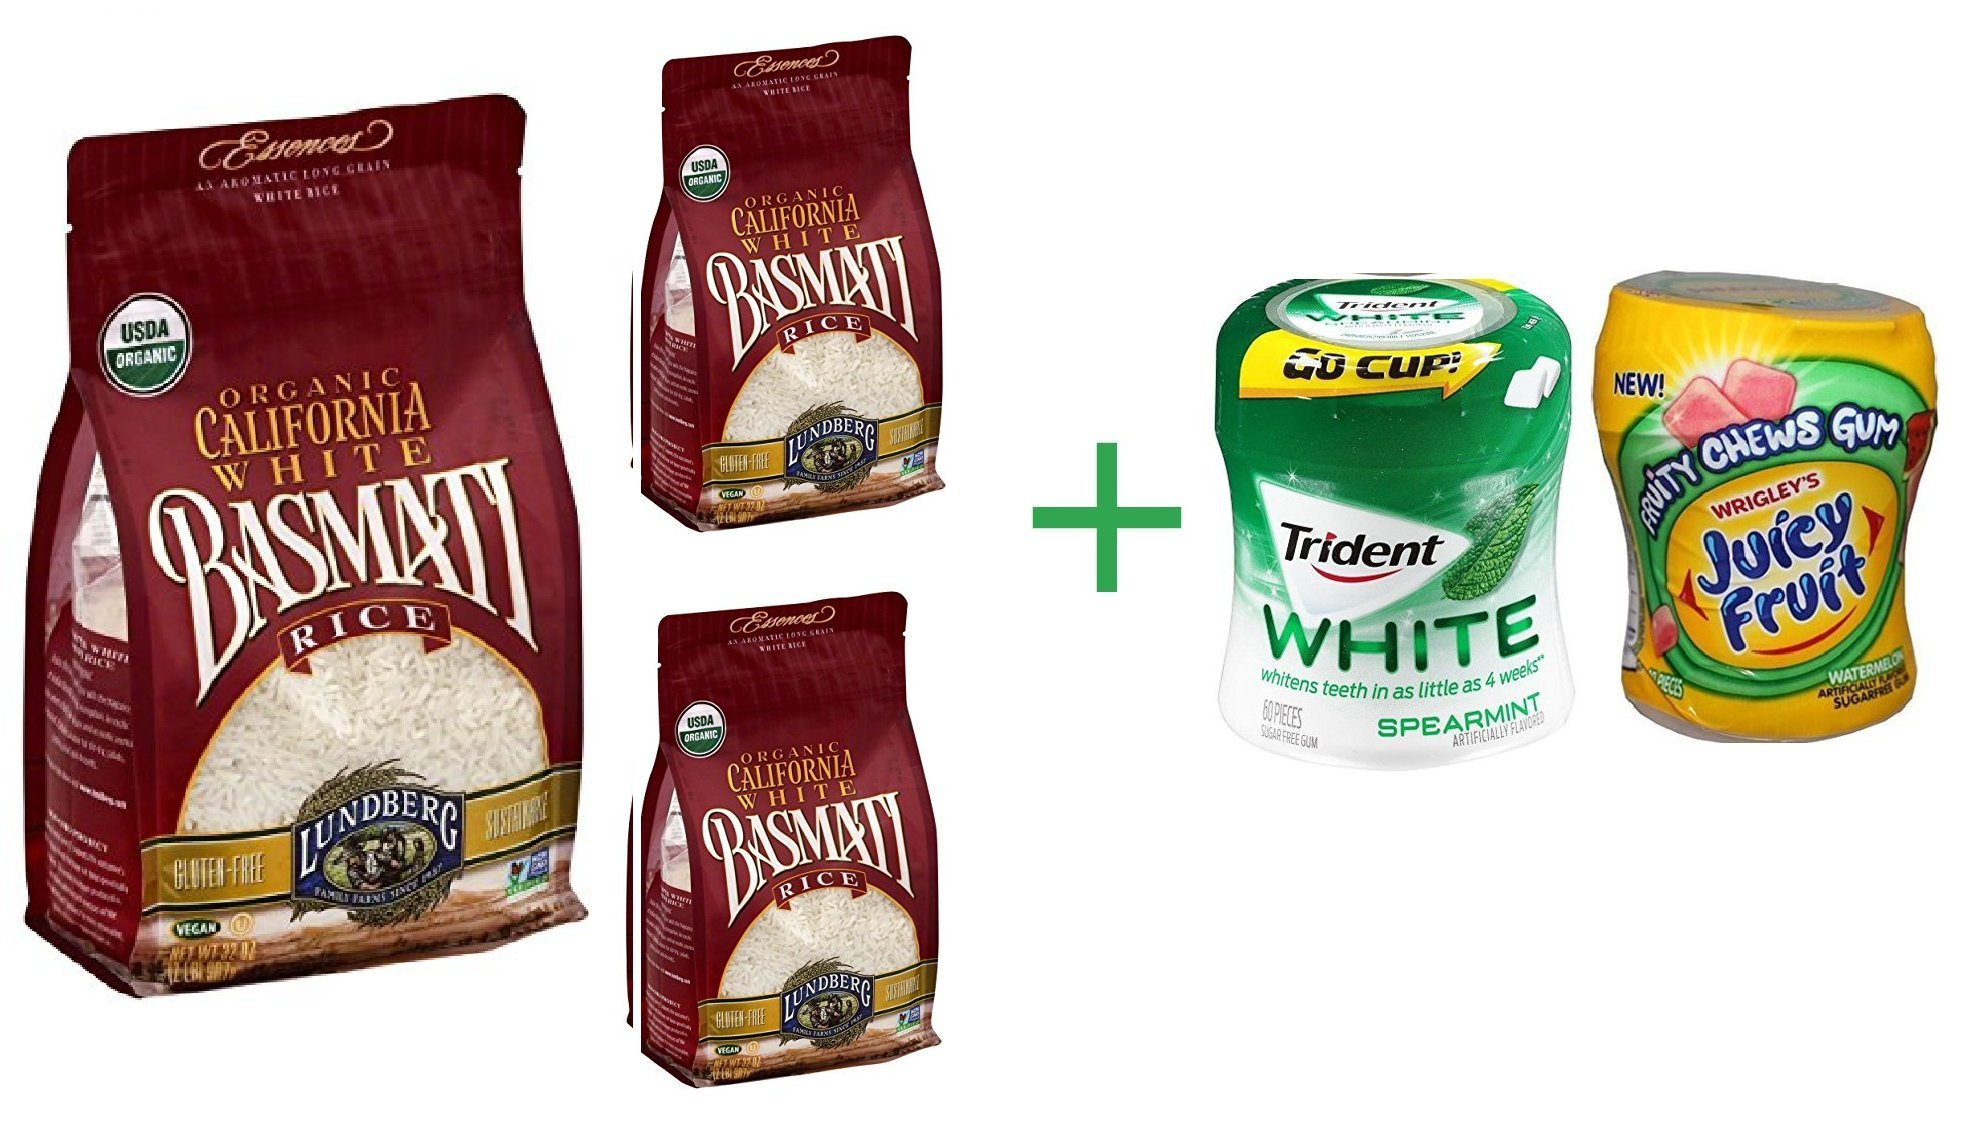 Lundberg Organic California White Basmati Rice 32 oz (3 Pack) + Fruity Chews Gum Watermelon 1/60 Count + Trident Go Cup Peppermint and Spearmint 1/60